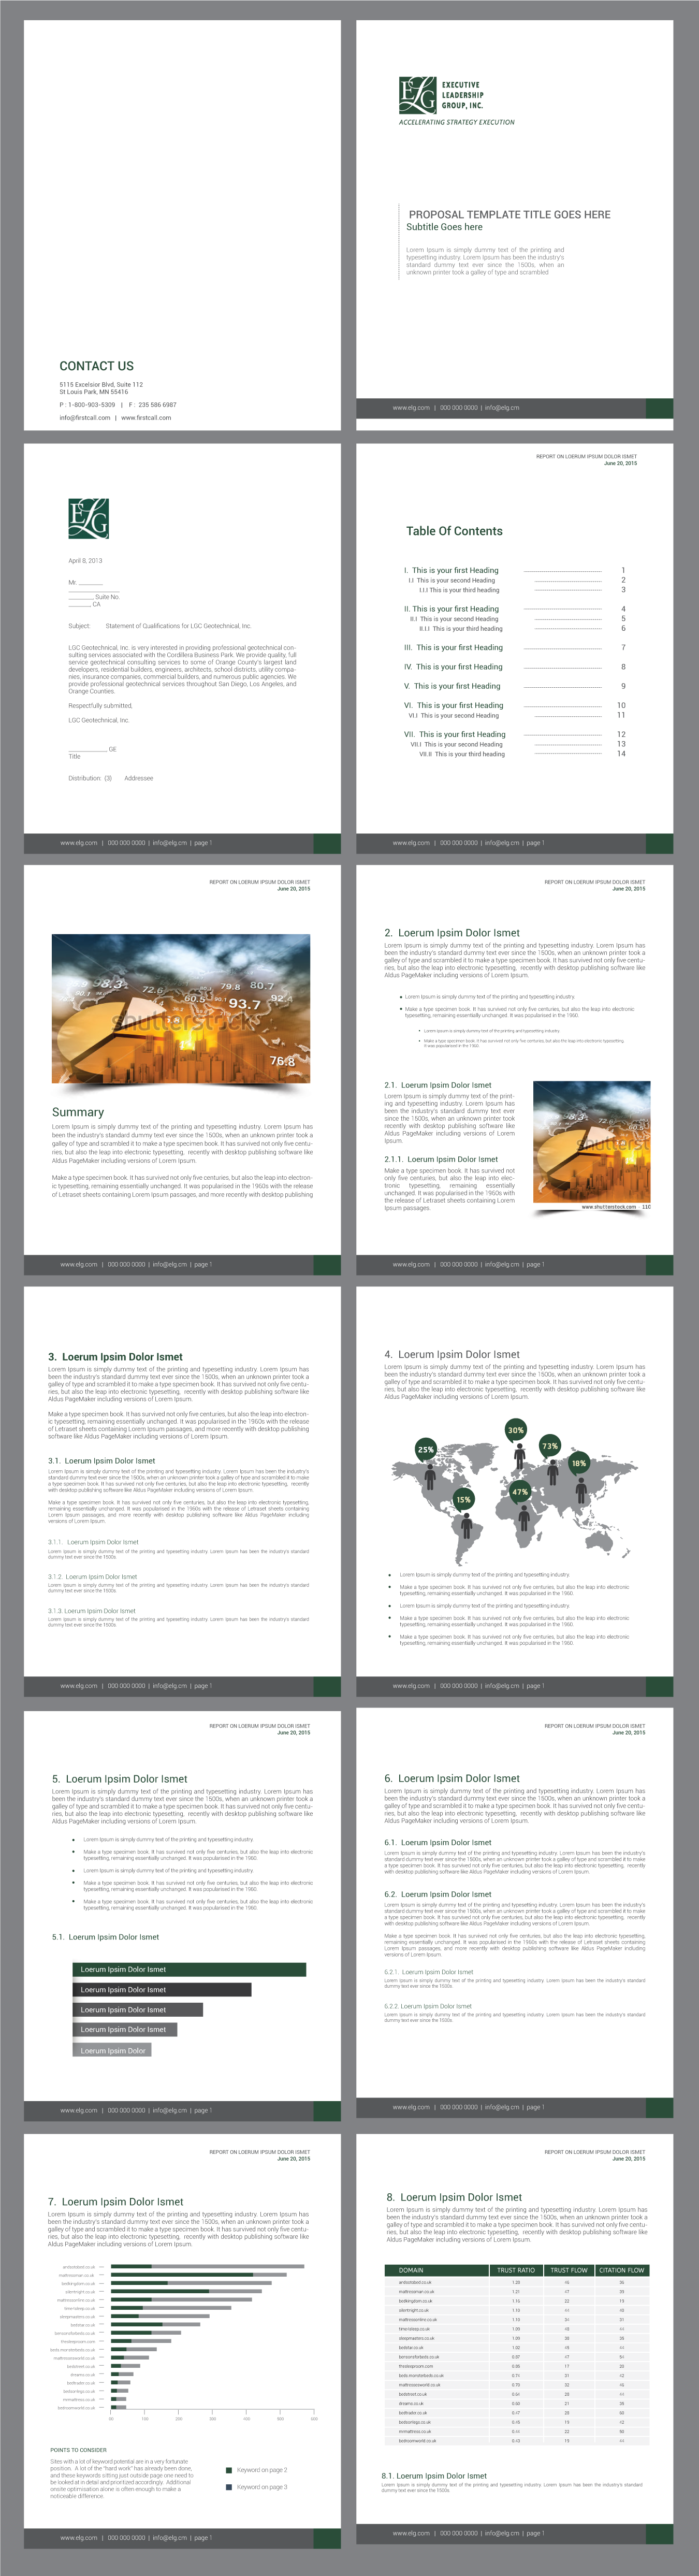 Graphic Design of a Report Template for an Elite Business Consultancy in the DC Metro Area